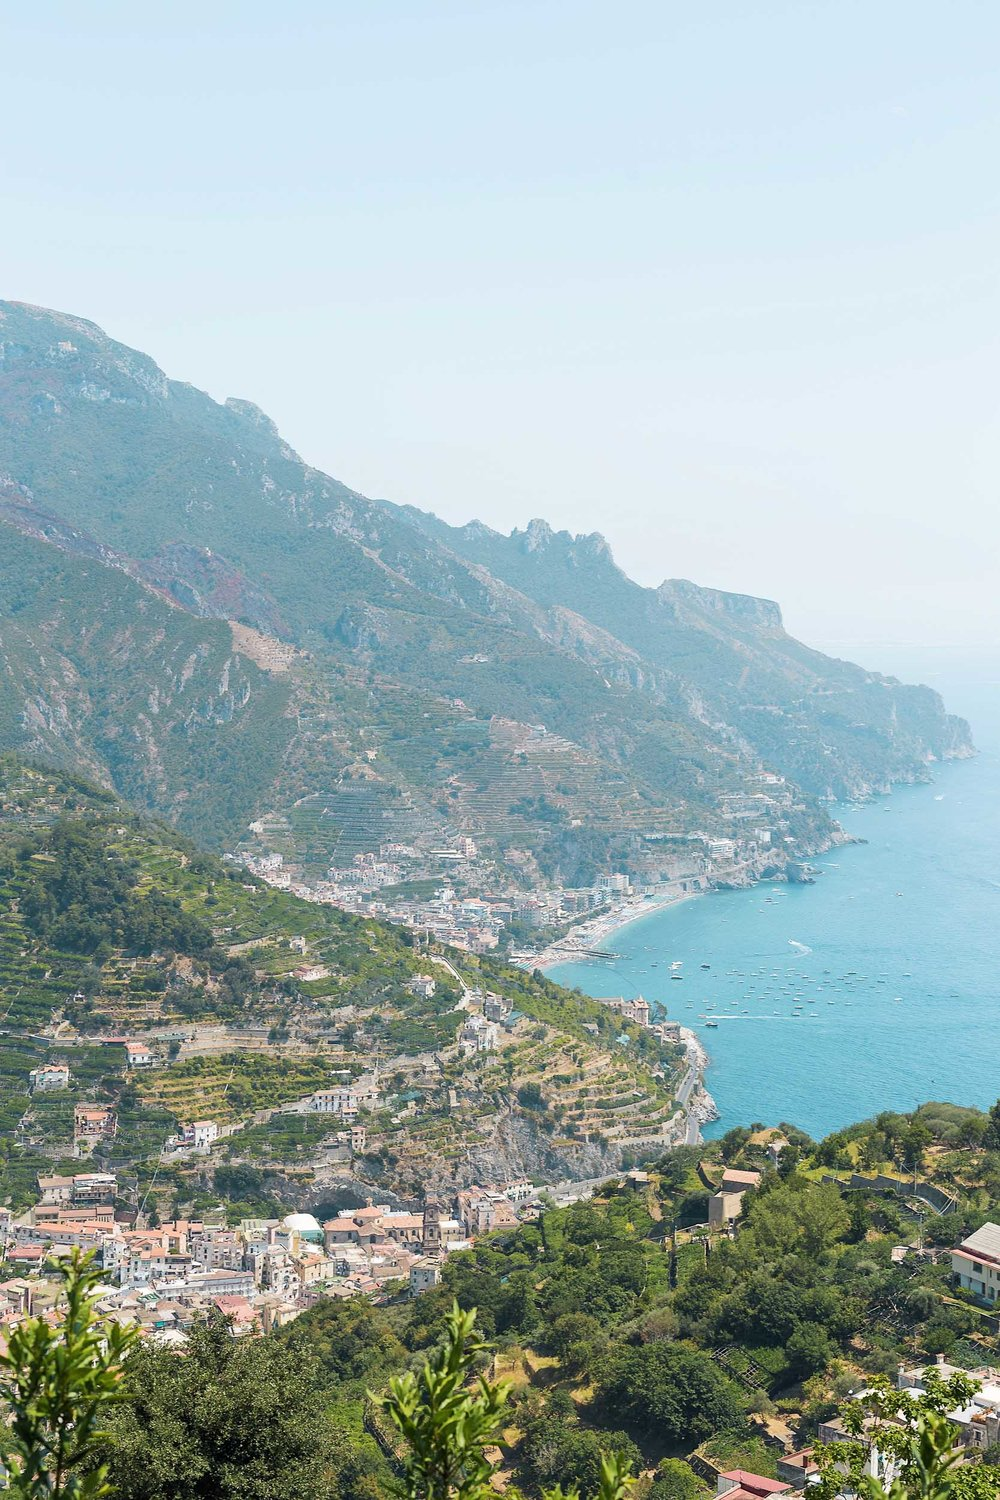 How to get to Positano on Italy's Amalfi Coast